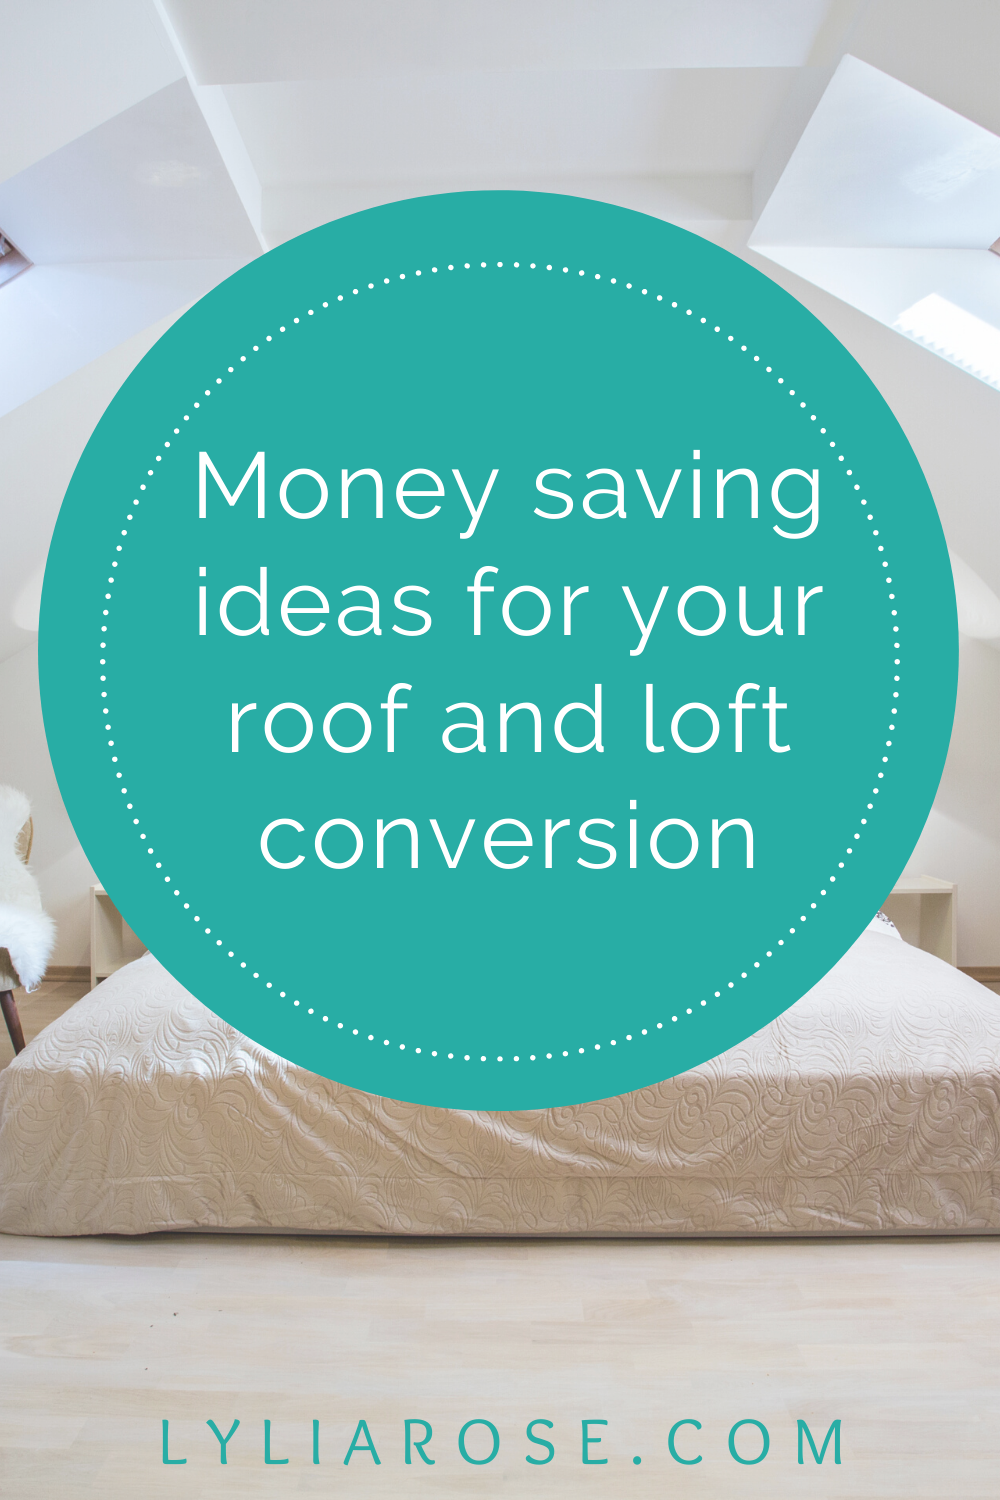 Money saving ideas for your roof and loft conversion (2)